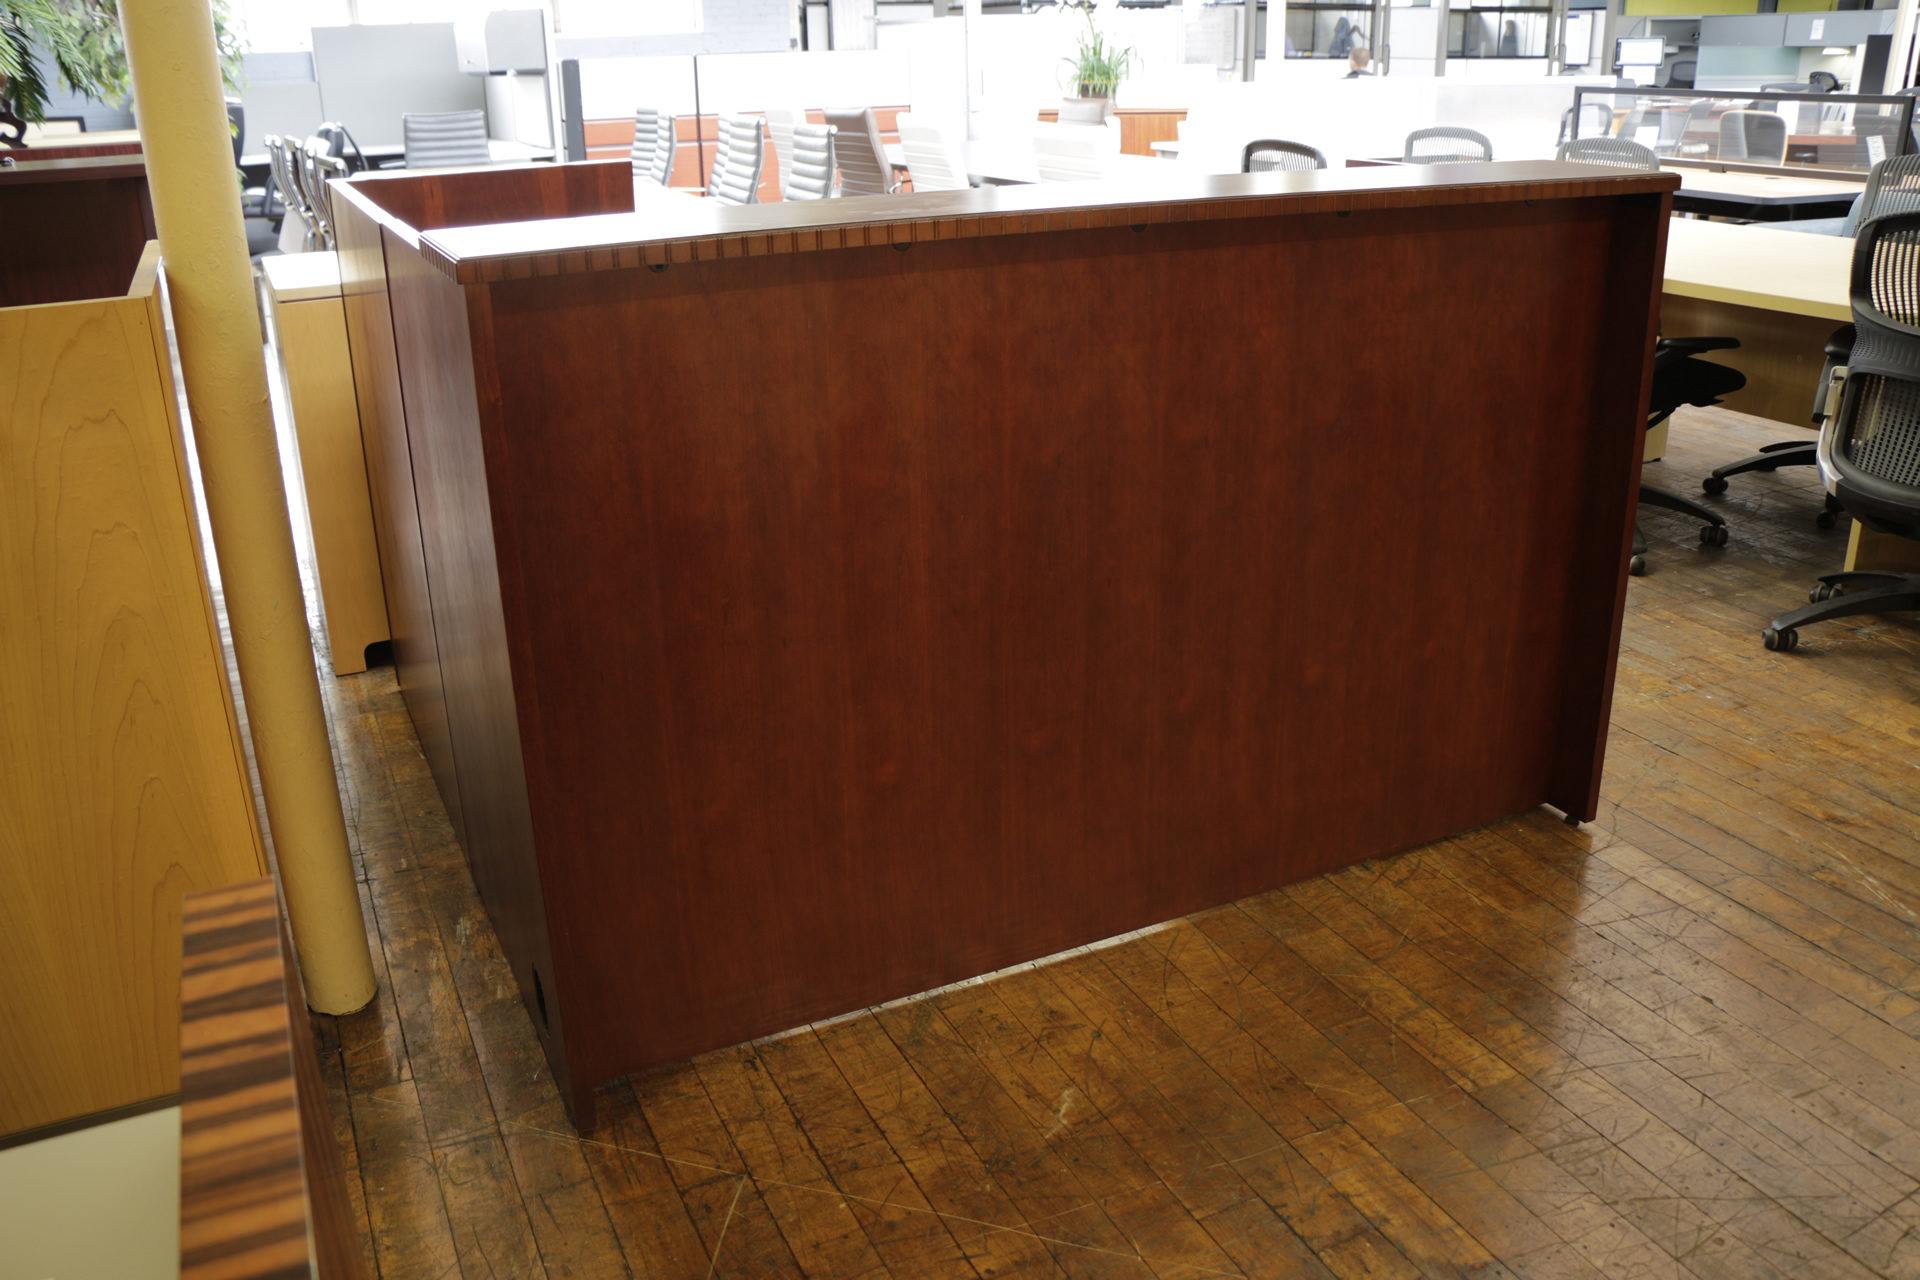 peartreeofficefurniture_peartreeofficefurniture_mg_3810.jpg